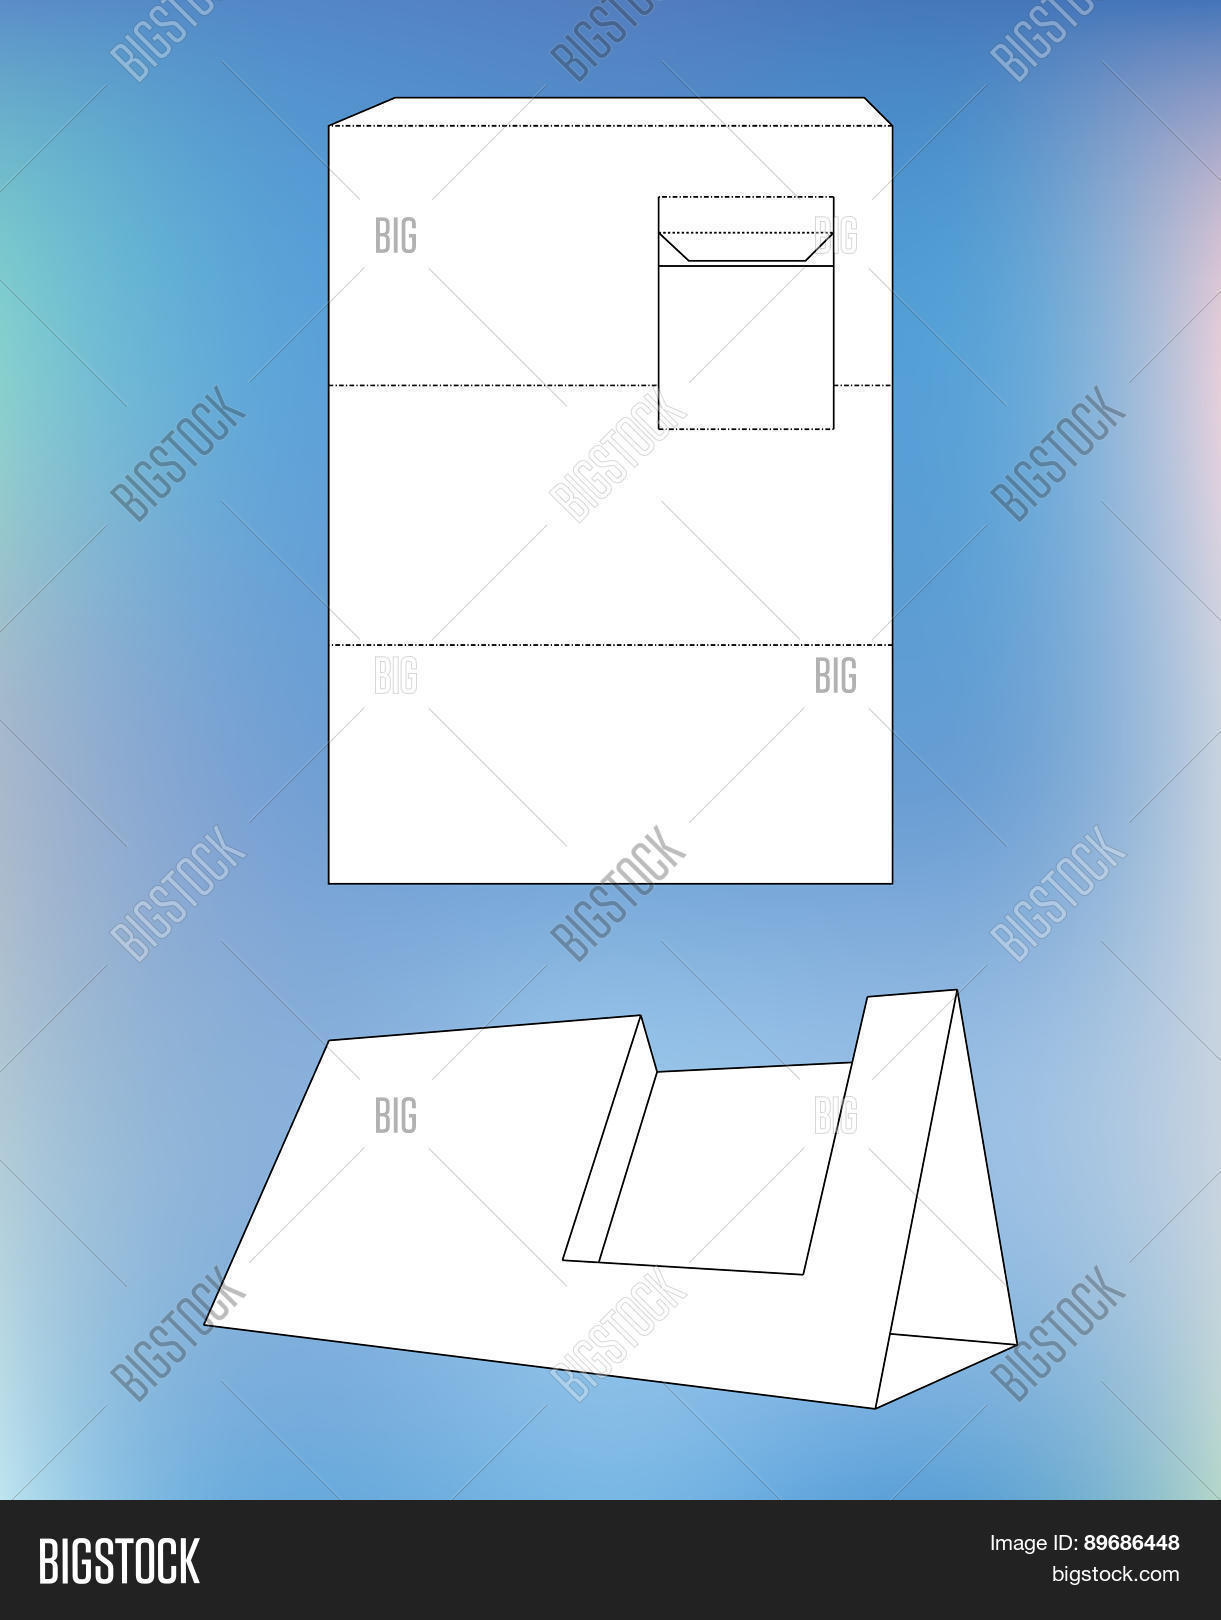 Business Card Display Vector & Photo (Free Trial) | Bigstock